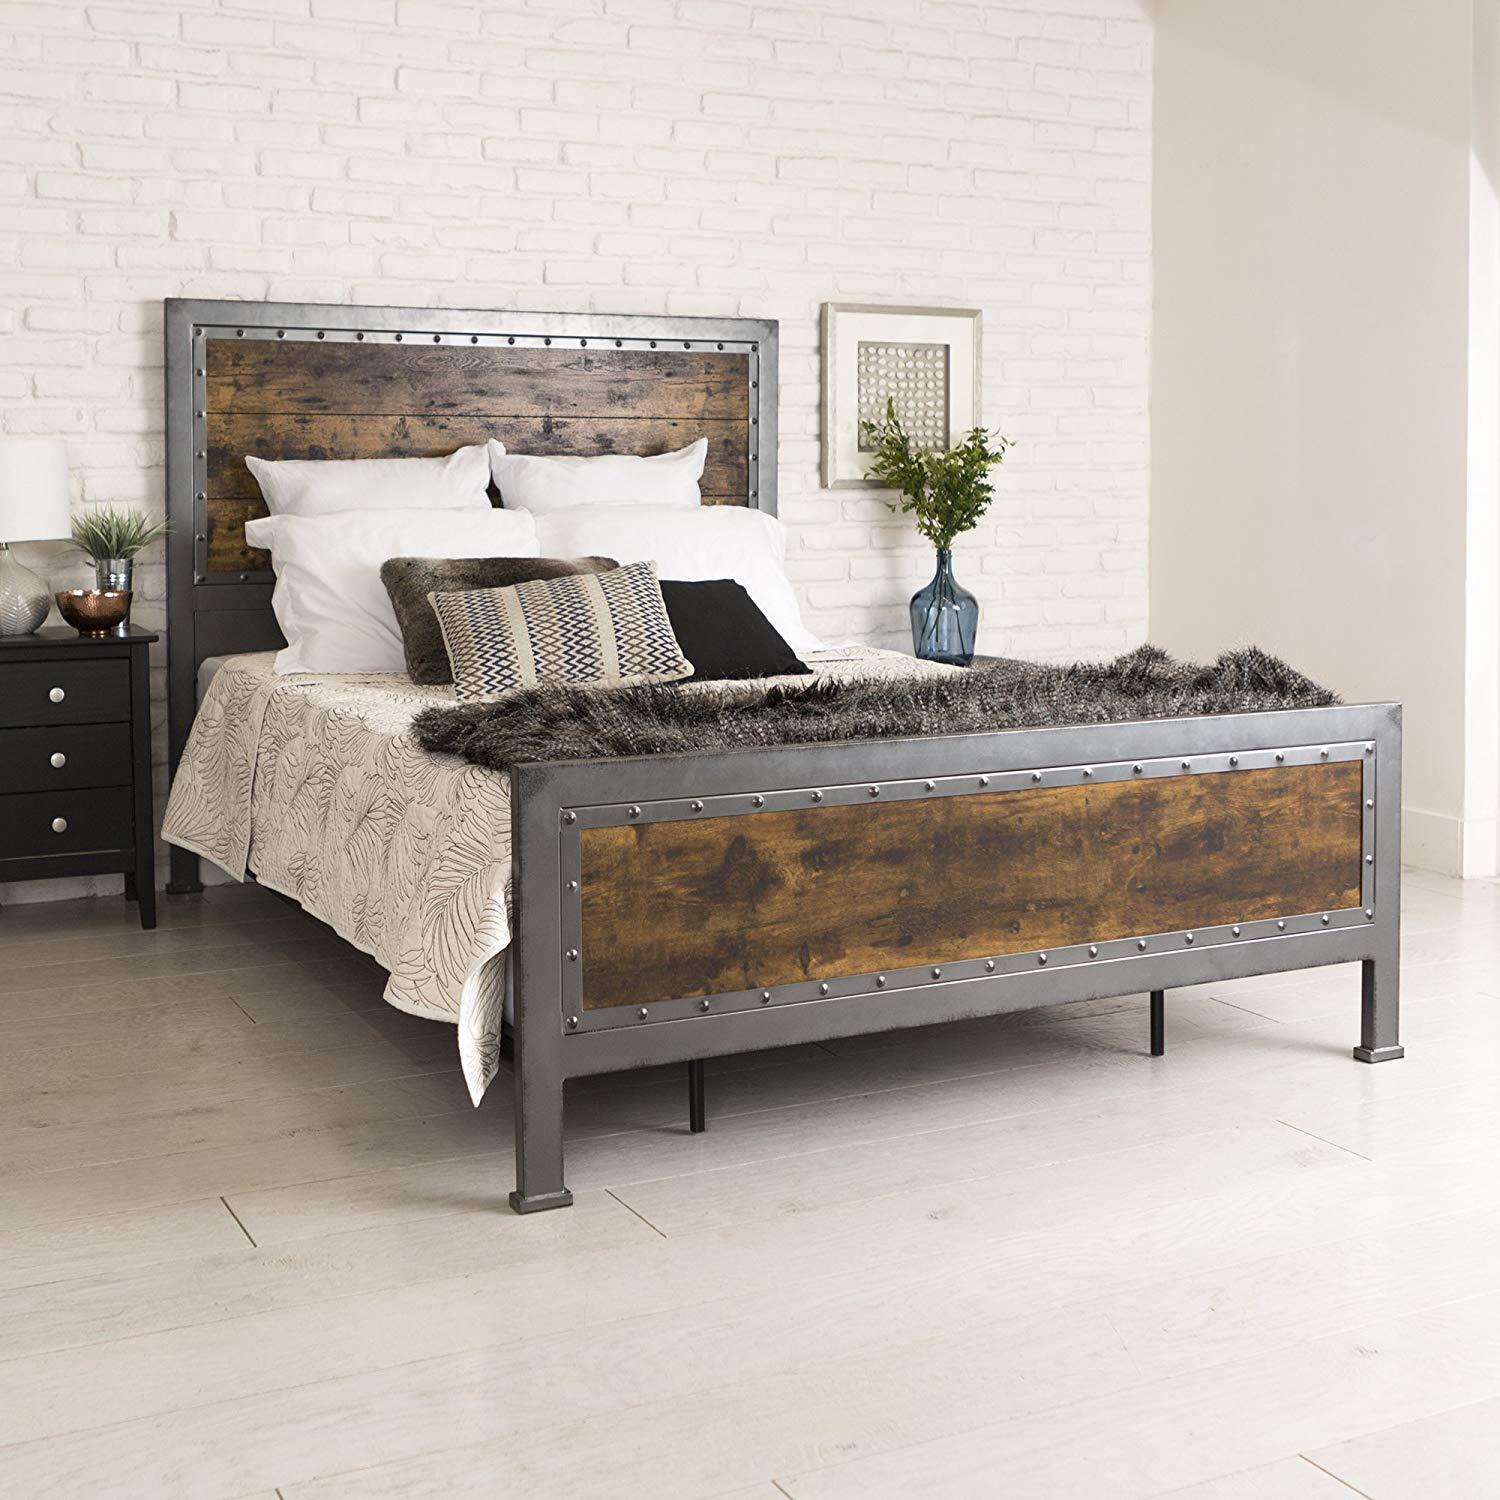 decorate your bedroom with rustic pieces of furniture